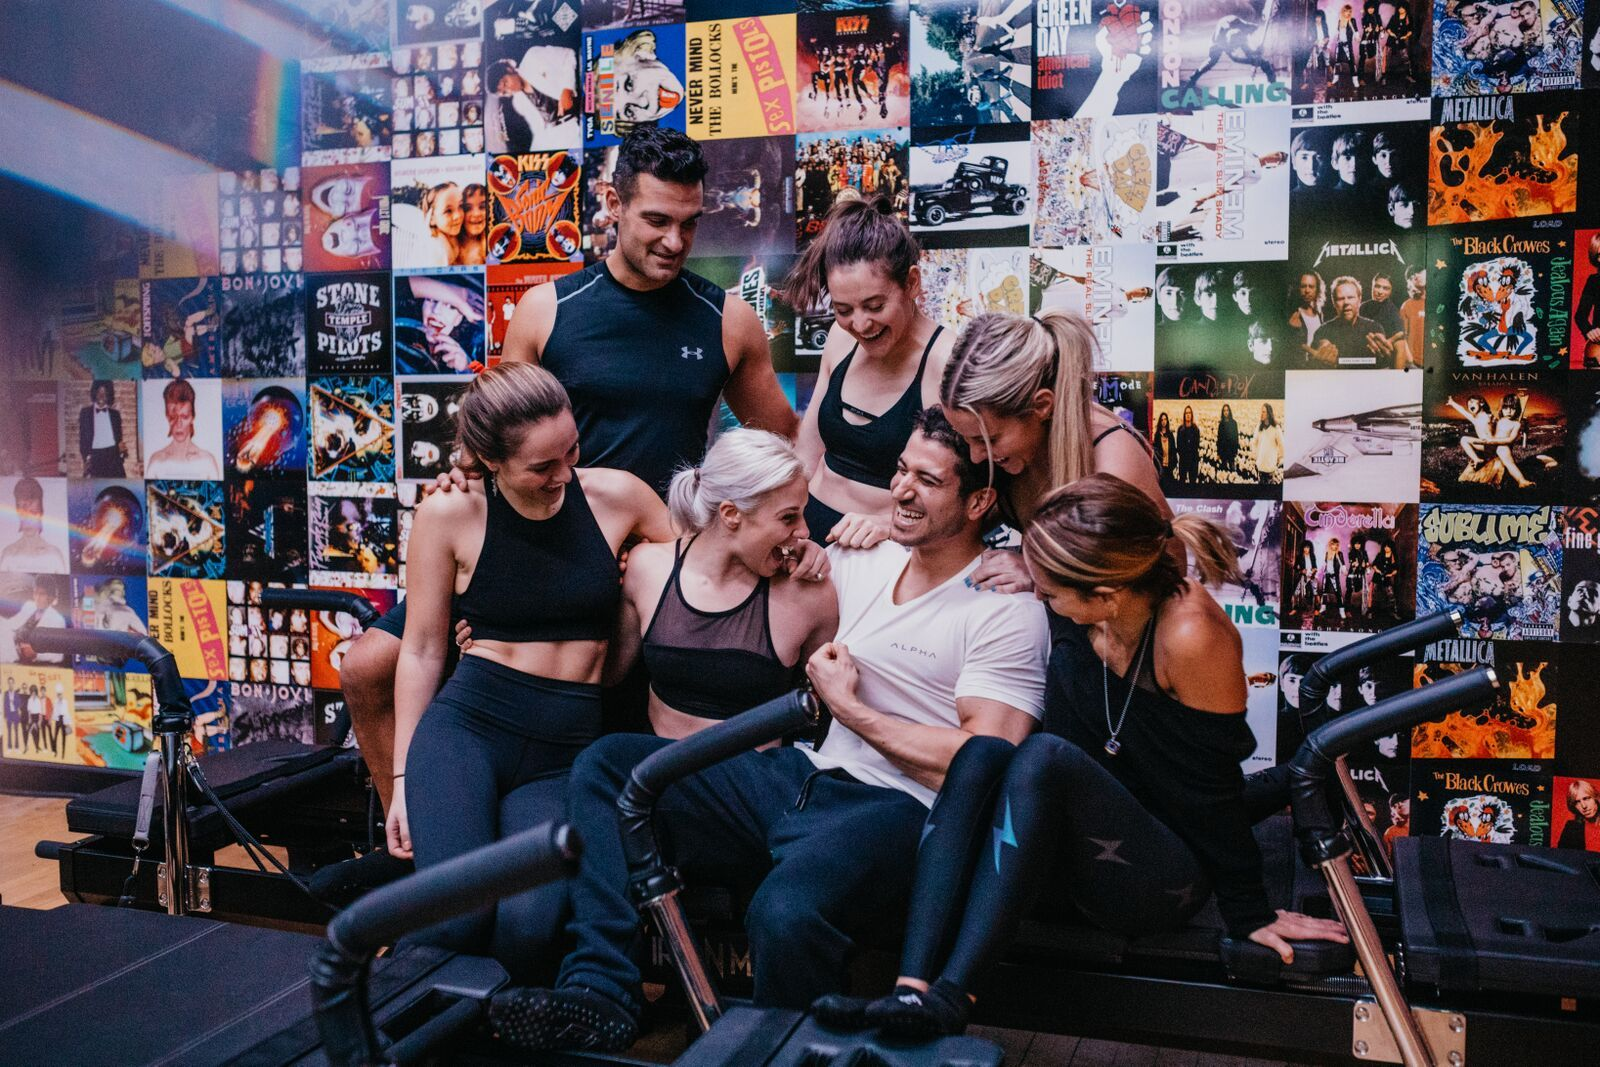 people happy after workout